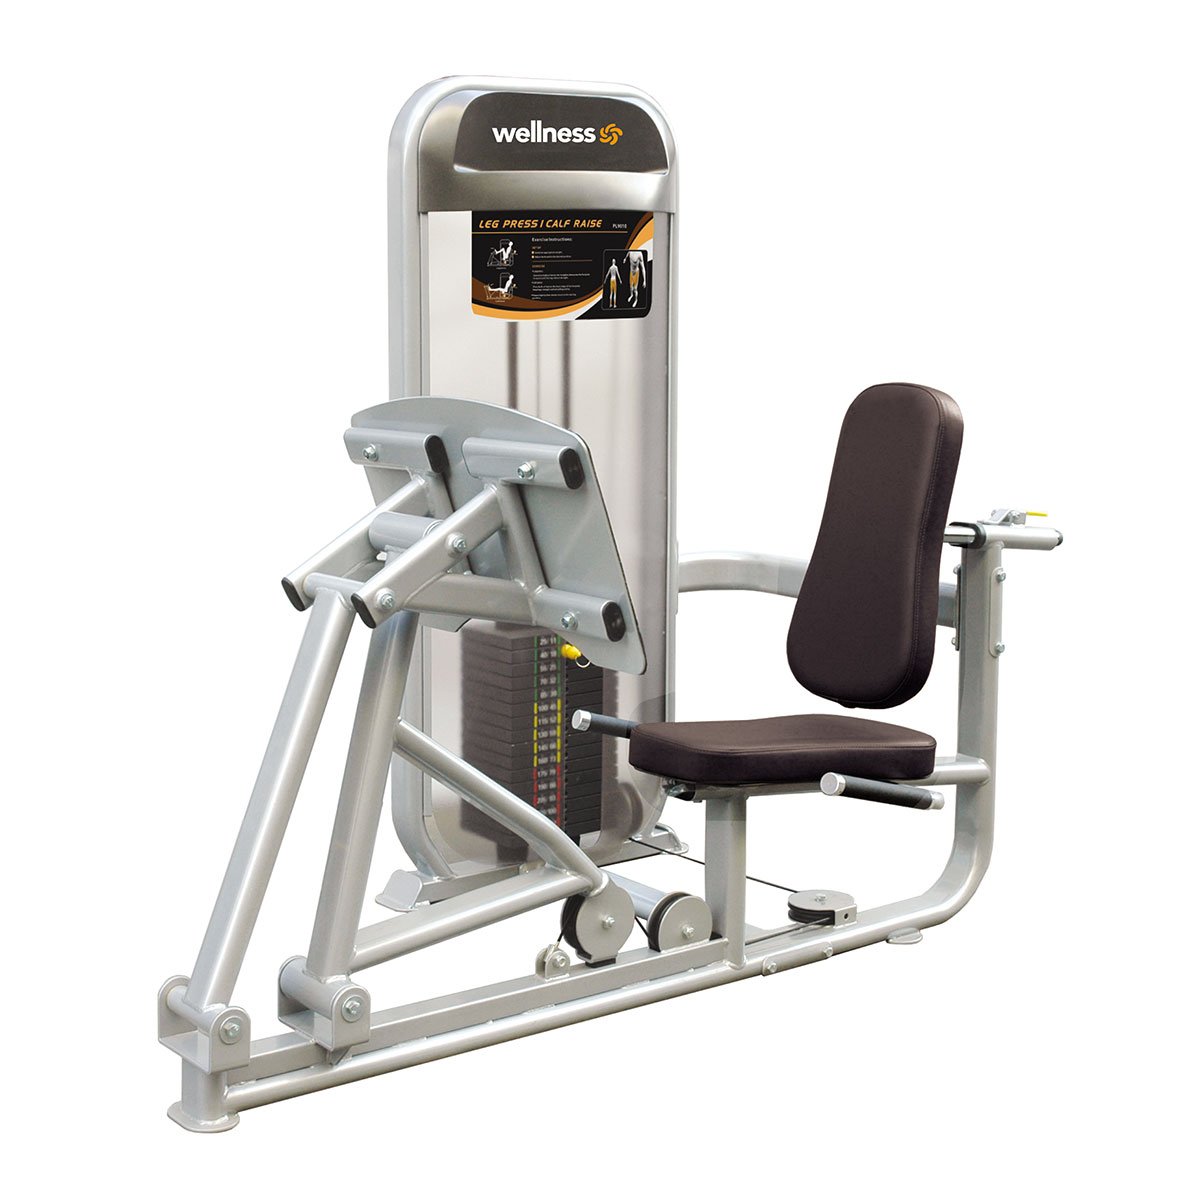 Leg Press  - Plamax Dual Series Wellness